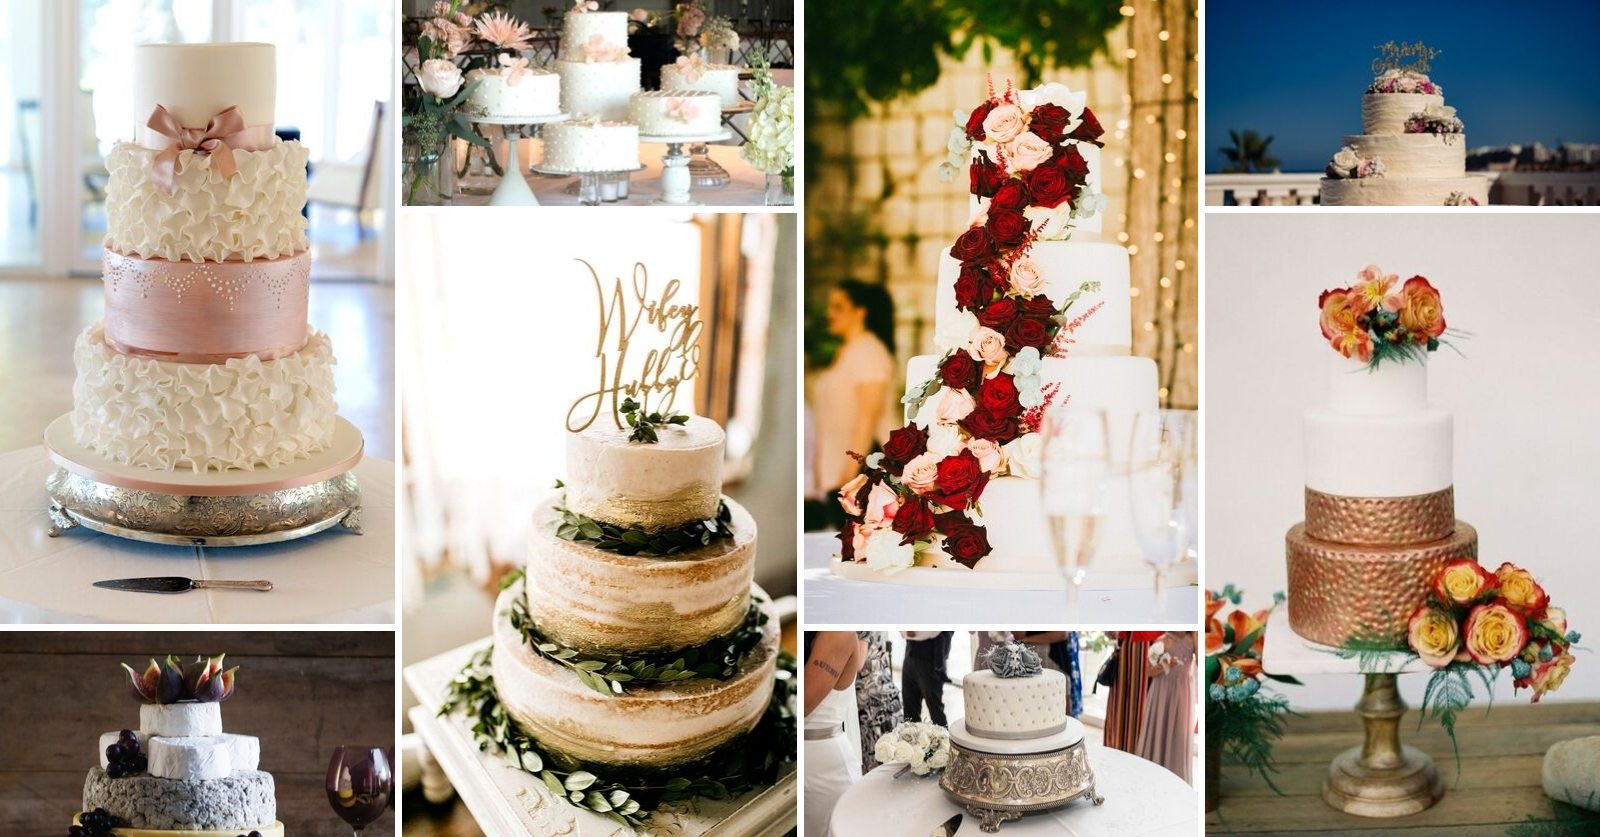 10-Wedding-Cake-Wonders-to-Wow-your-Guests-Main-feature-image-Sarah-Young